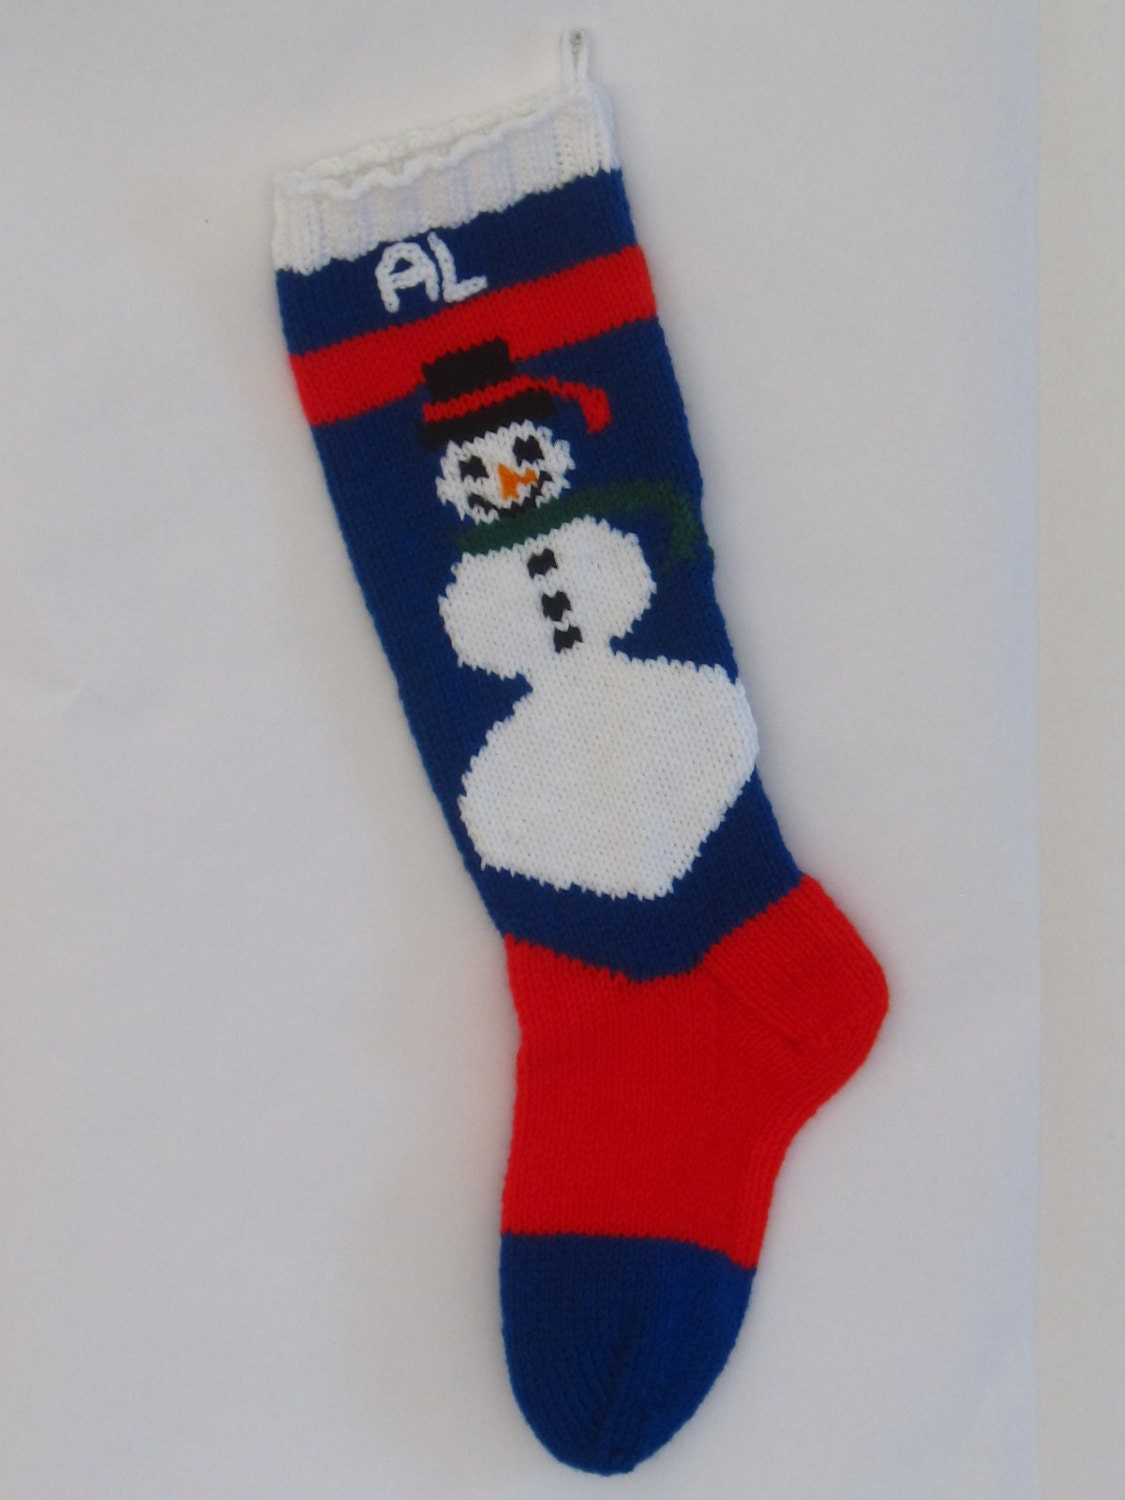 Personalized Knitted Christmas Snowman Stocking by happy83936